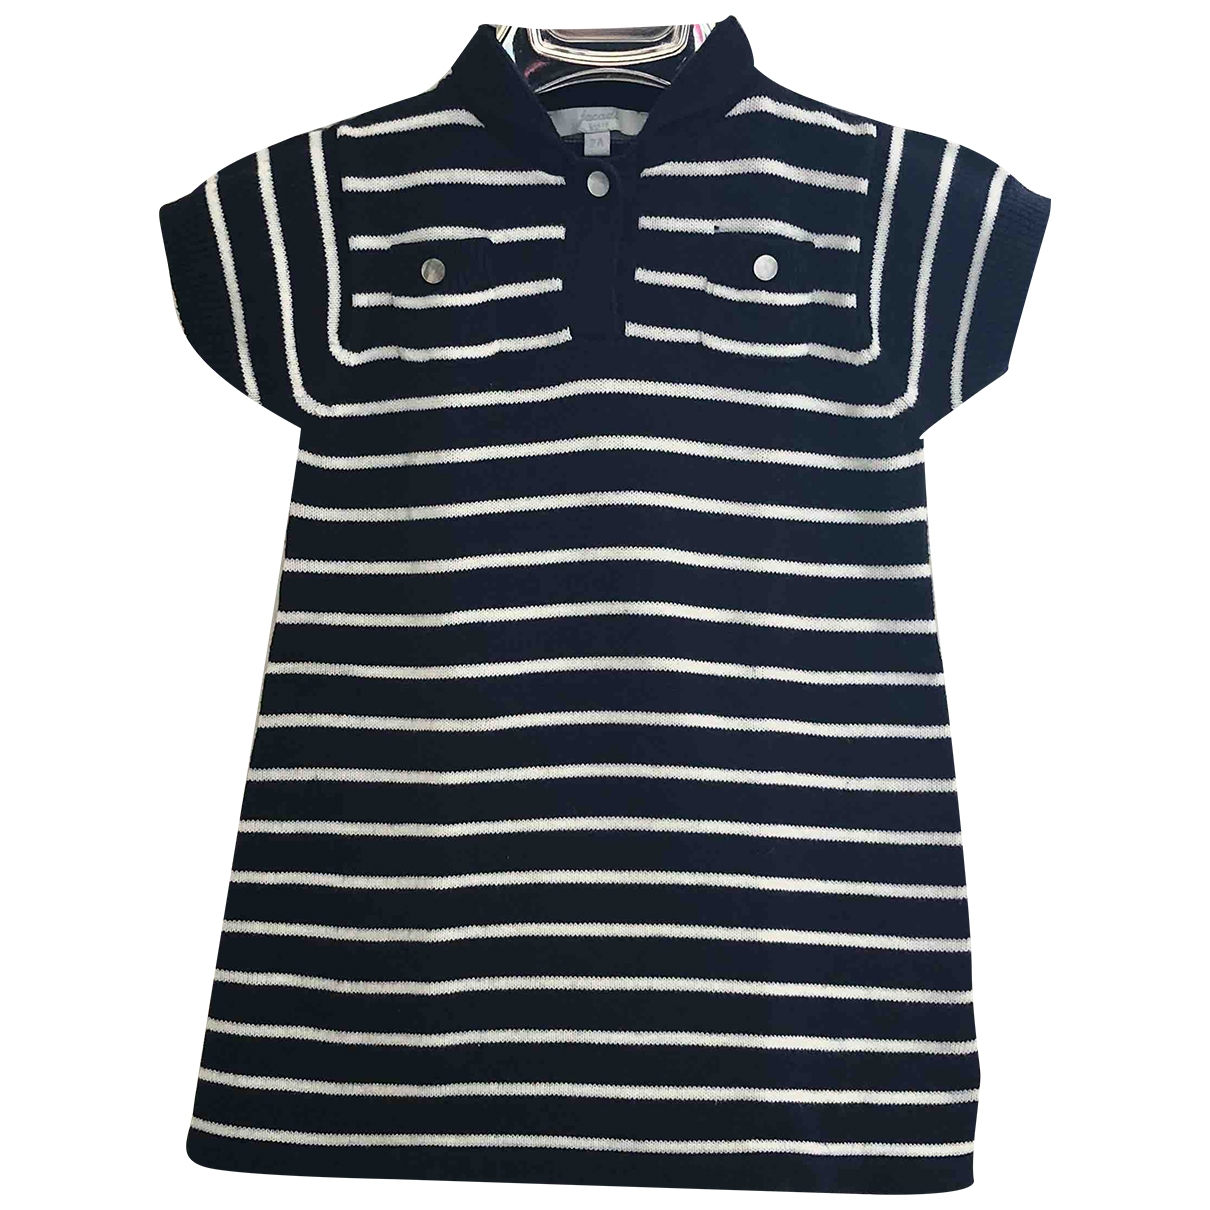 Jacadi \N Navy Cotton dress for Kids 2 years - up to 86cm FR